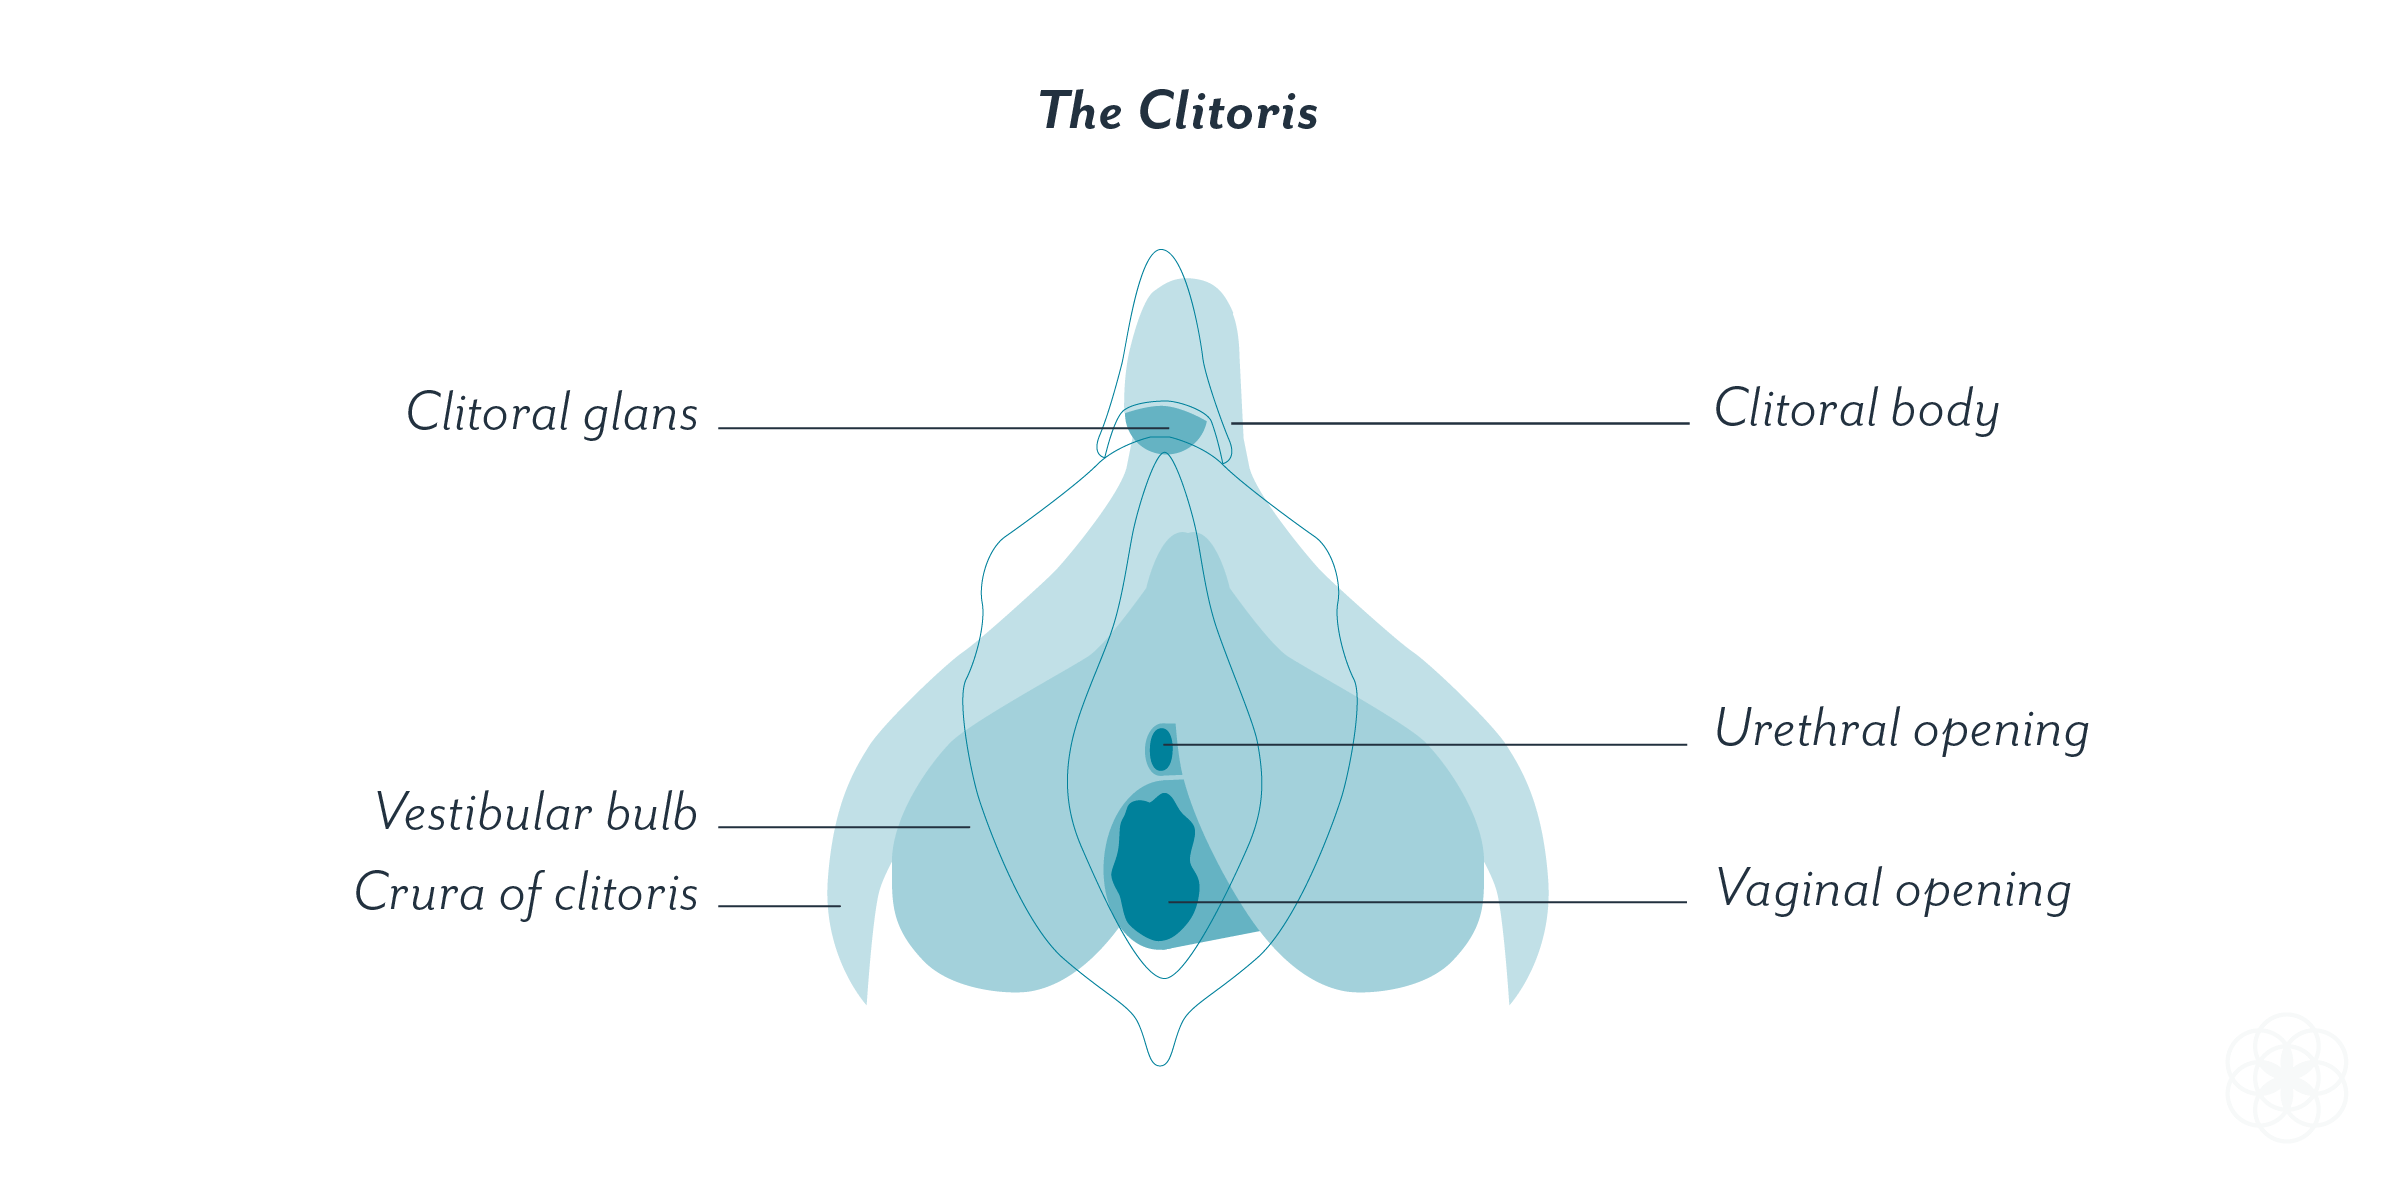 A labeled illustration of the clitoris